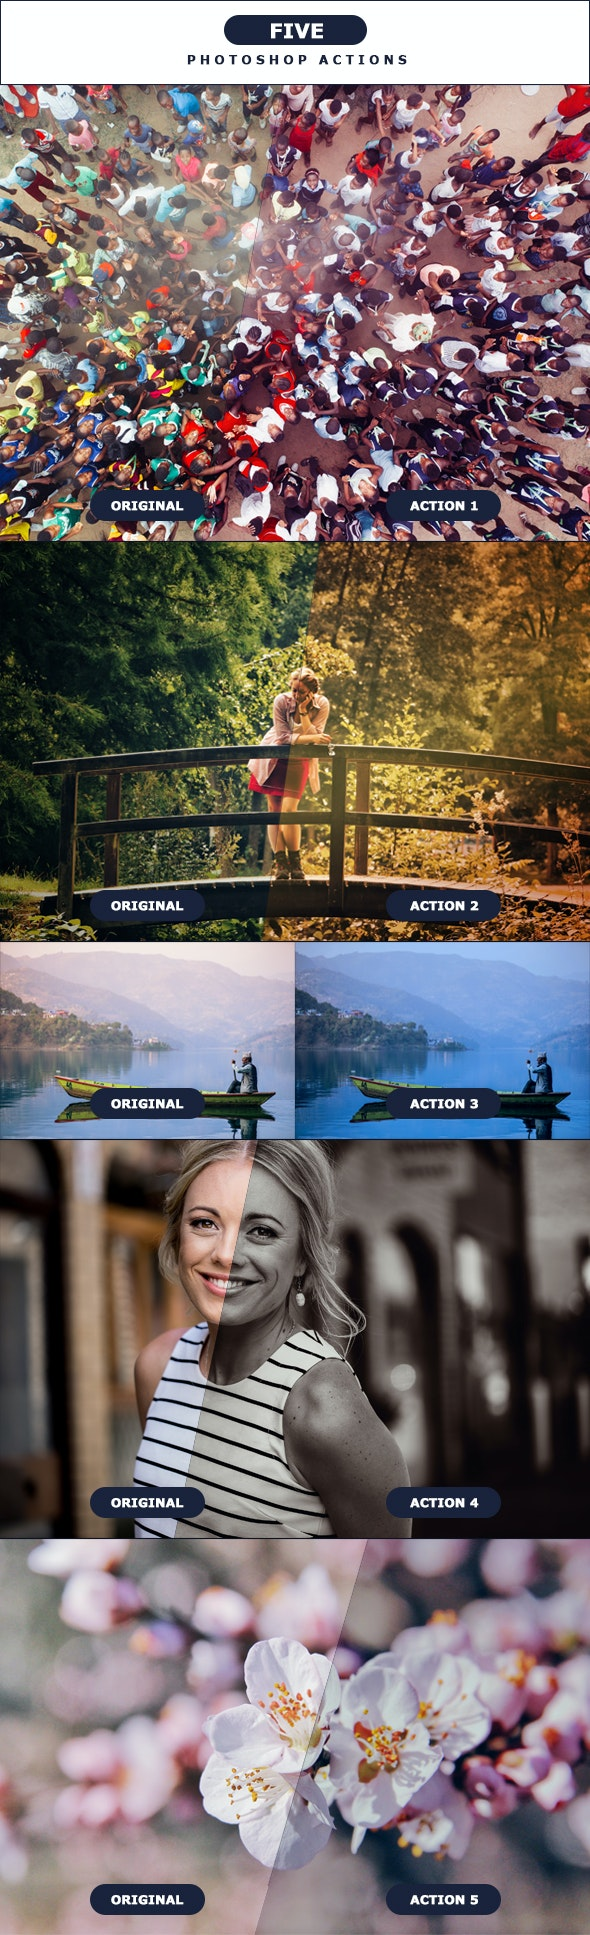 FIVE - Photoshop Actions 5 - Photo Effects Actions